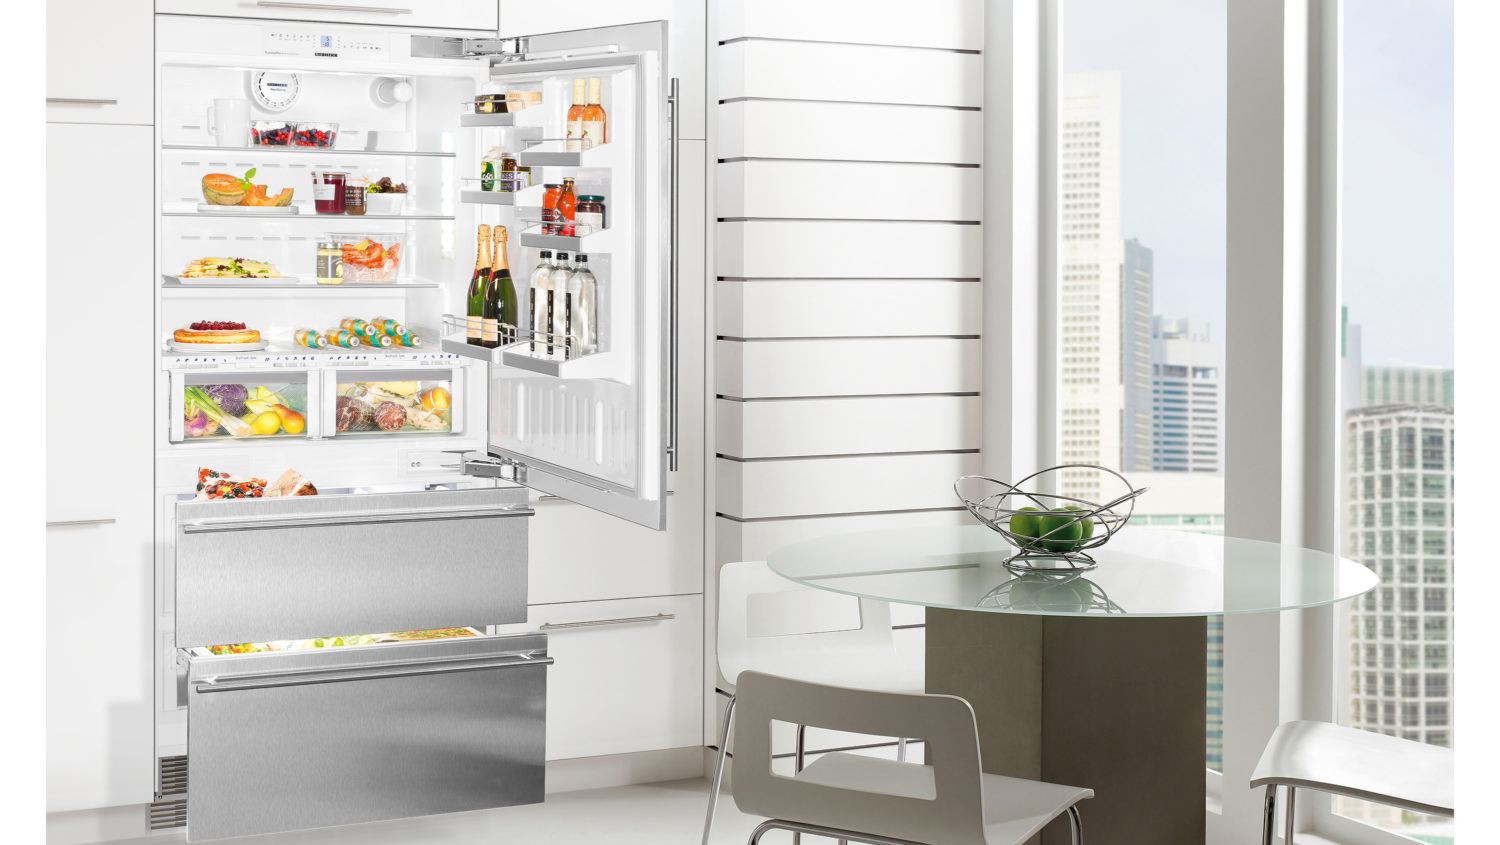 Liebherr integrated fridge freezer installation instructions